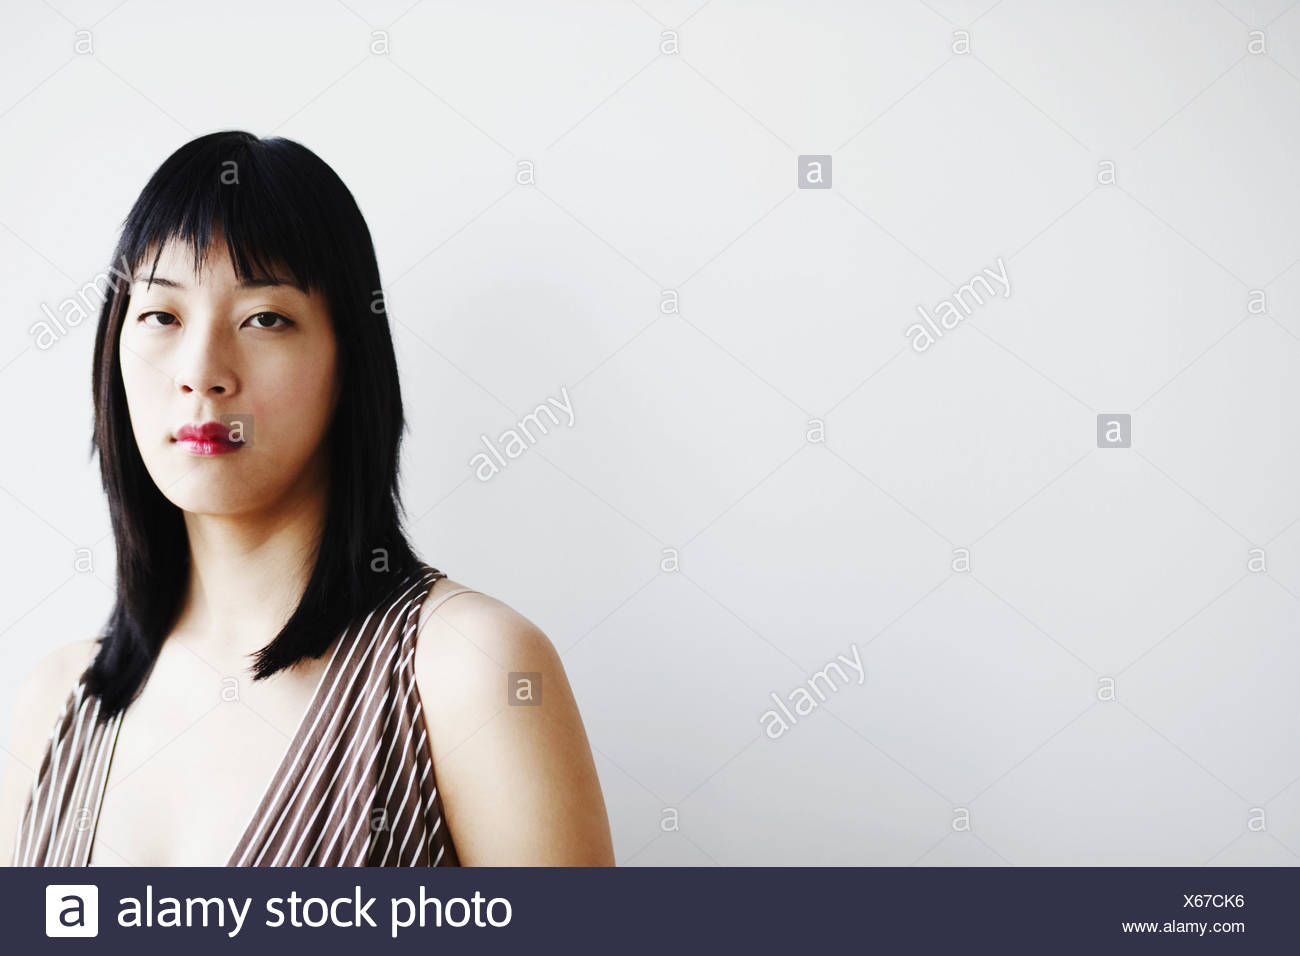 young woman thinking